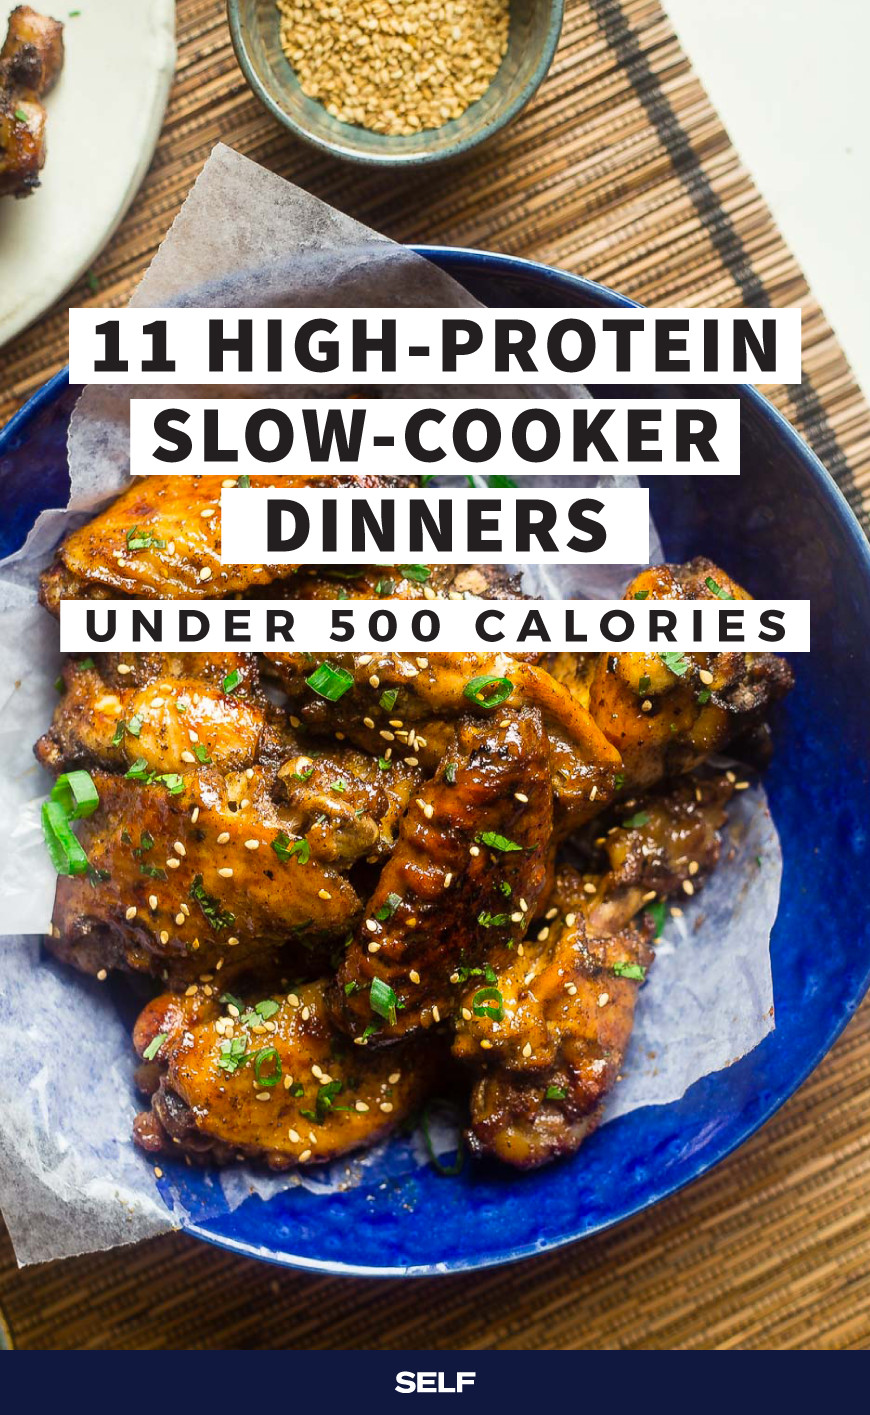 500 Heart Healthy Slow Cooker Recipes  11 High Protein Slow Cooker Dinners Under 500 Calories in